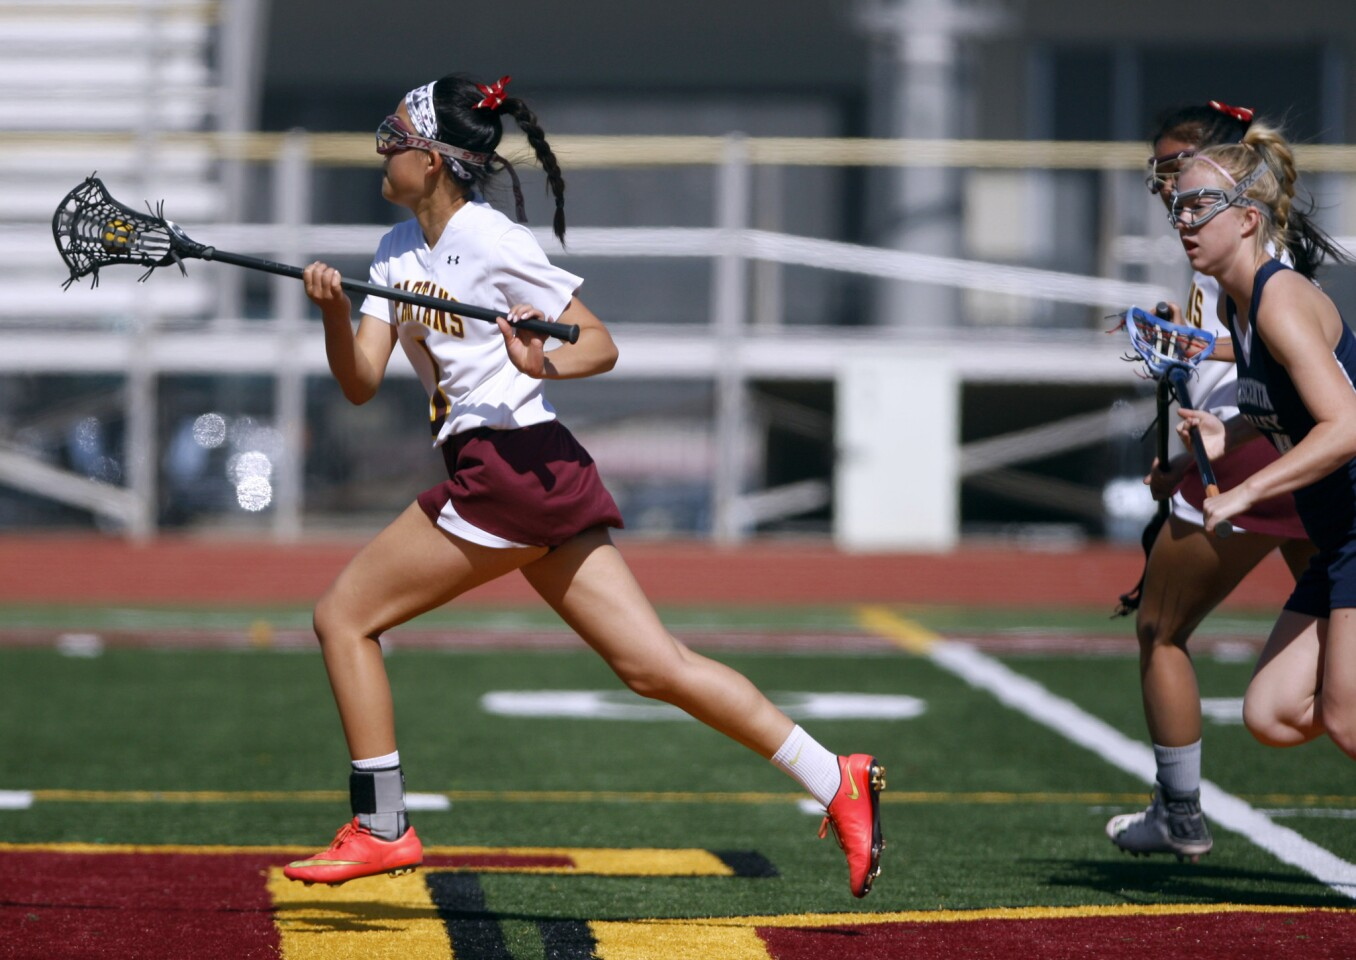 Photo Gallery: Crescenta Valley High School girls lacrosse vs. La Cañada High School